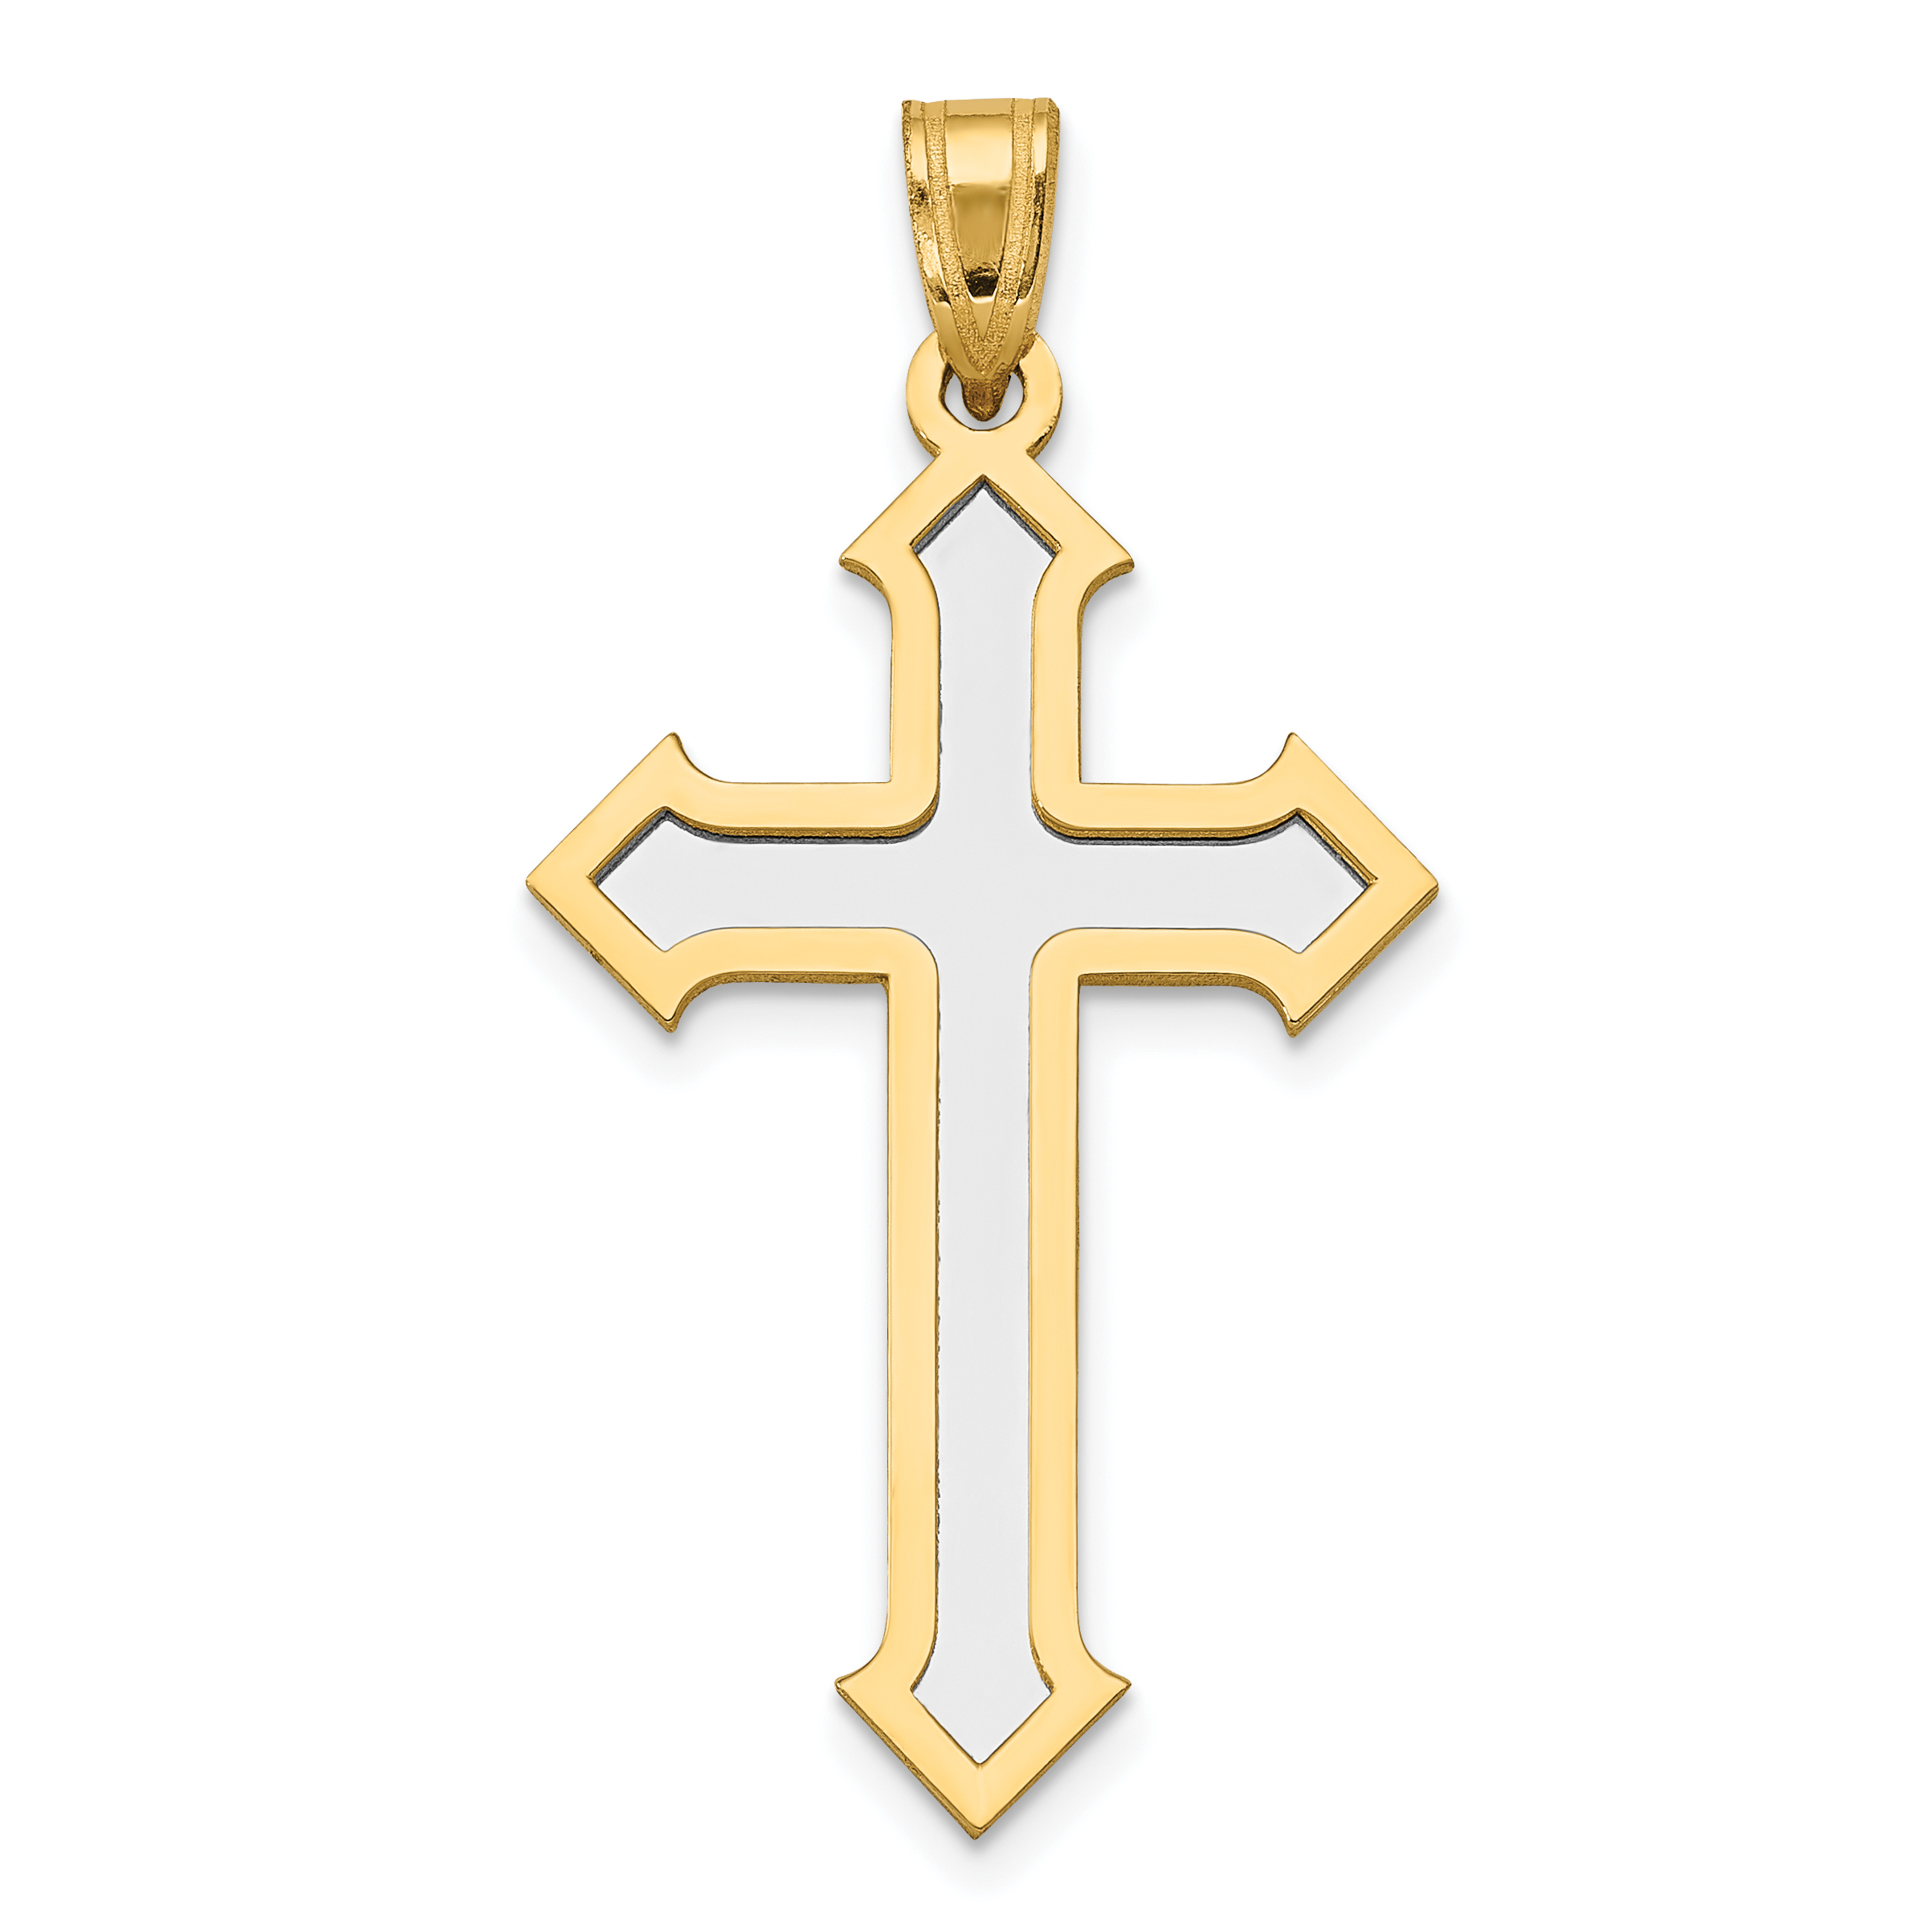 14k Yellow and White Gold Two-tone Passion Cross Pendant Length 36mm - image 2 de 2